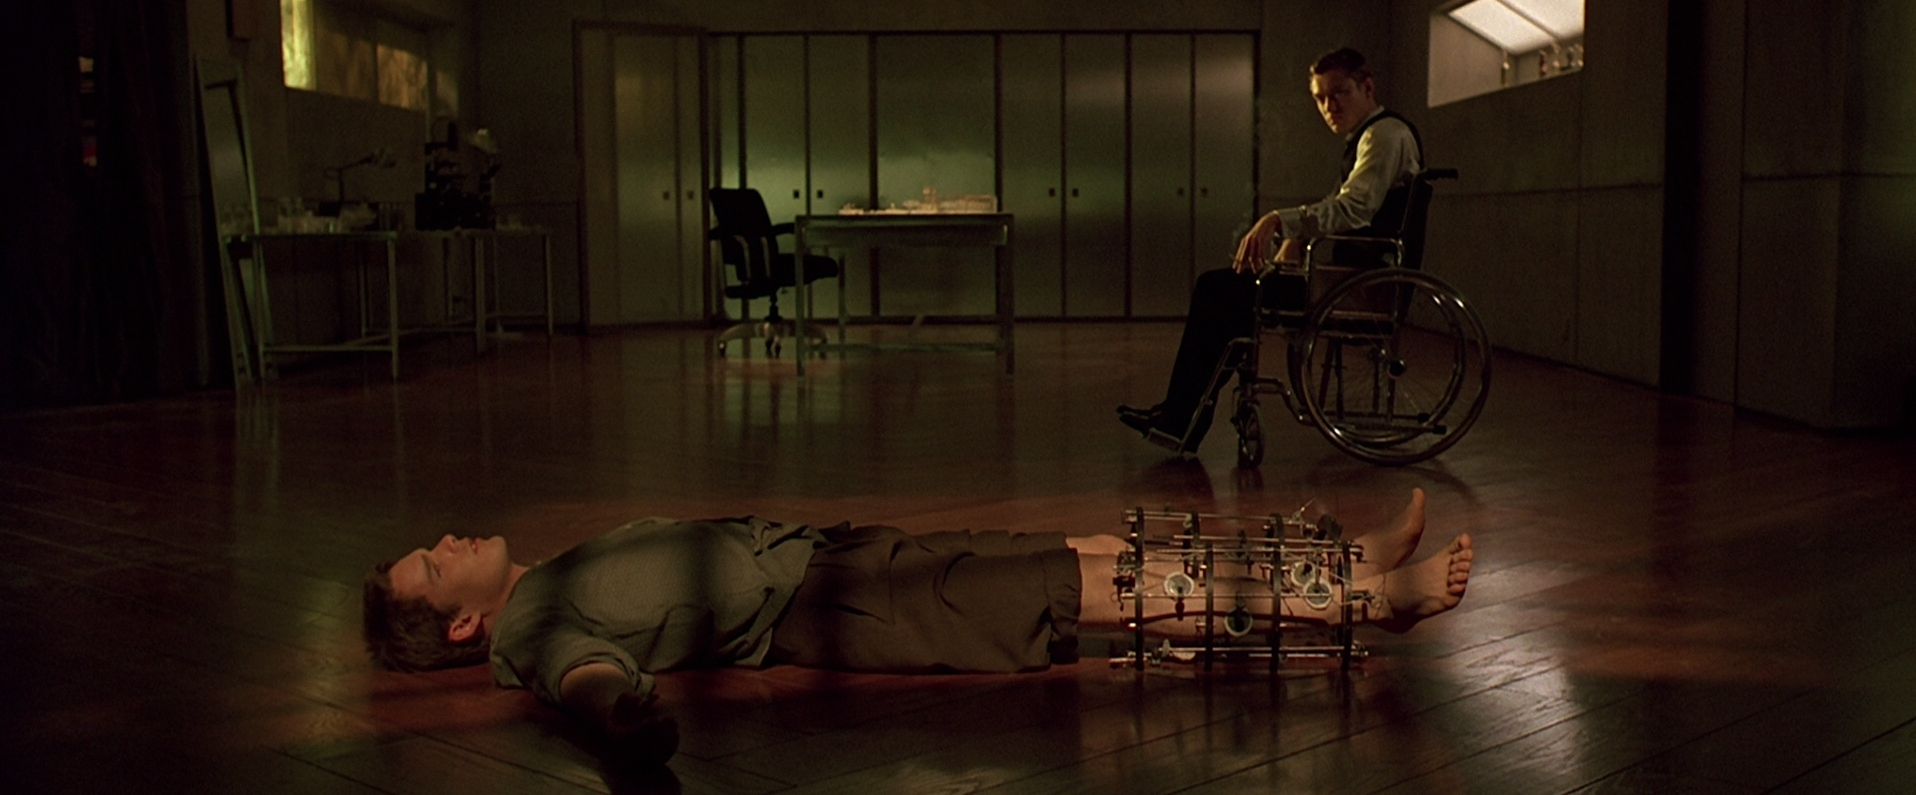 Analysis and Review of Andrew Niccol's Film Gattaca